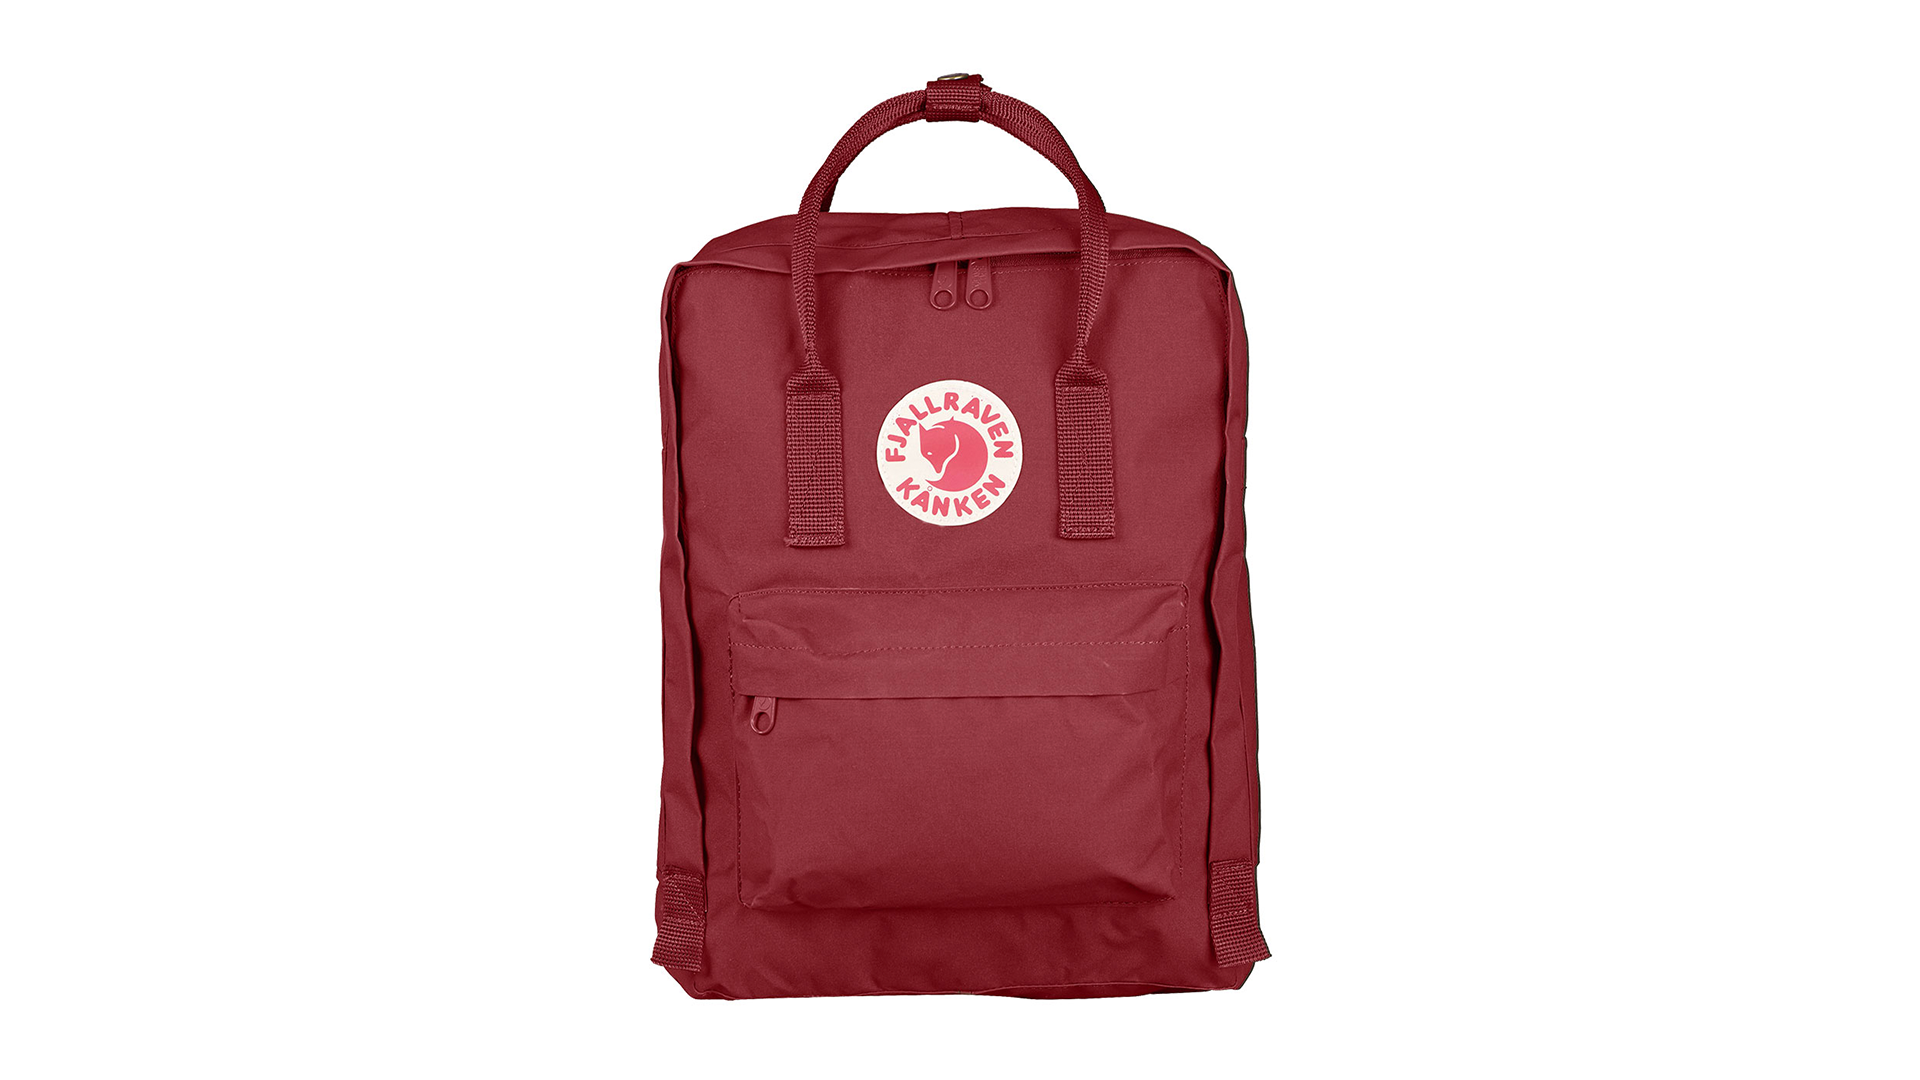 A Kanken backpack is perfect for holding all of your school items